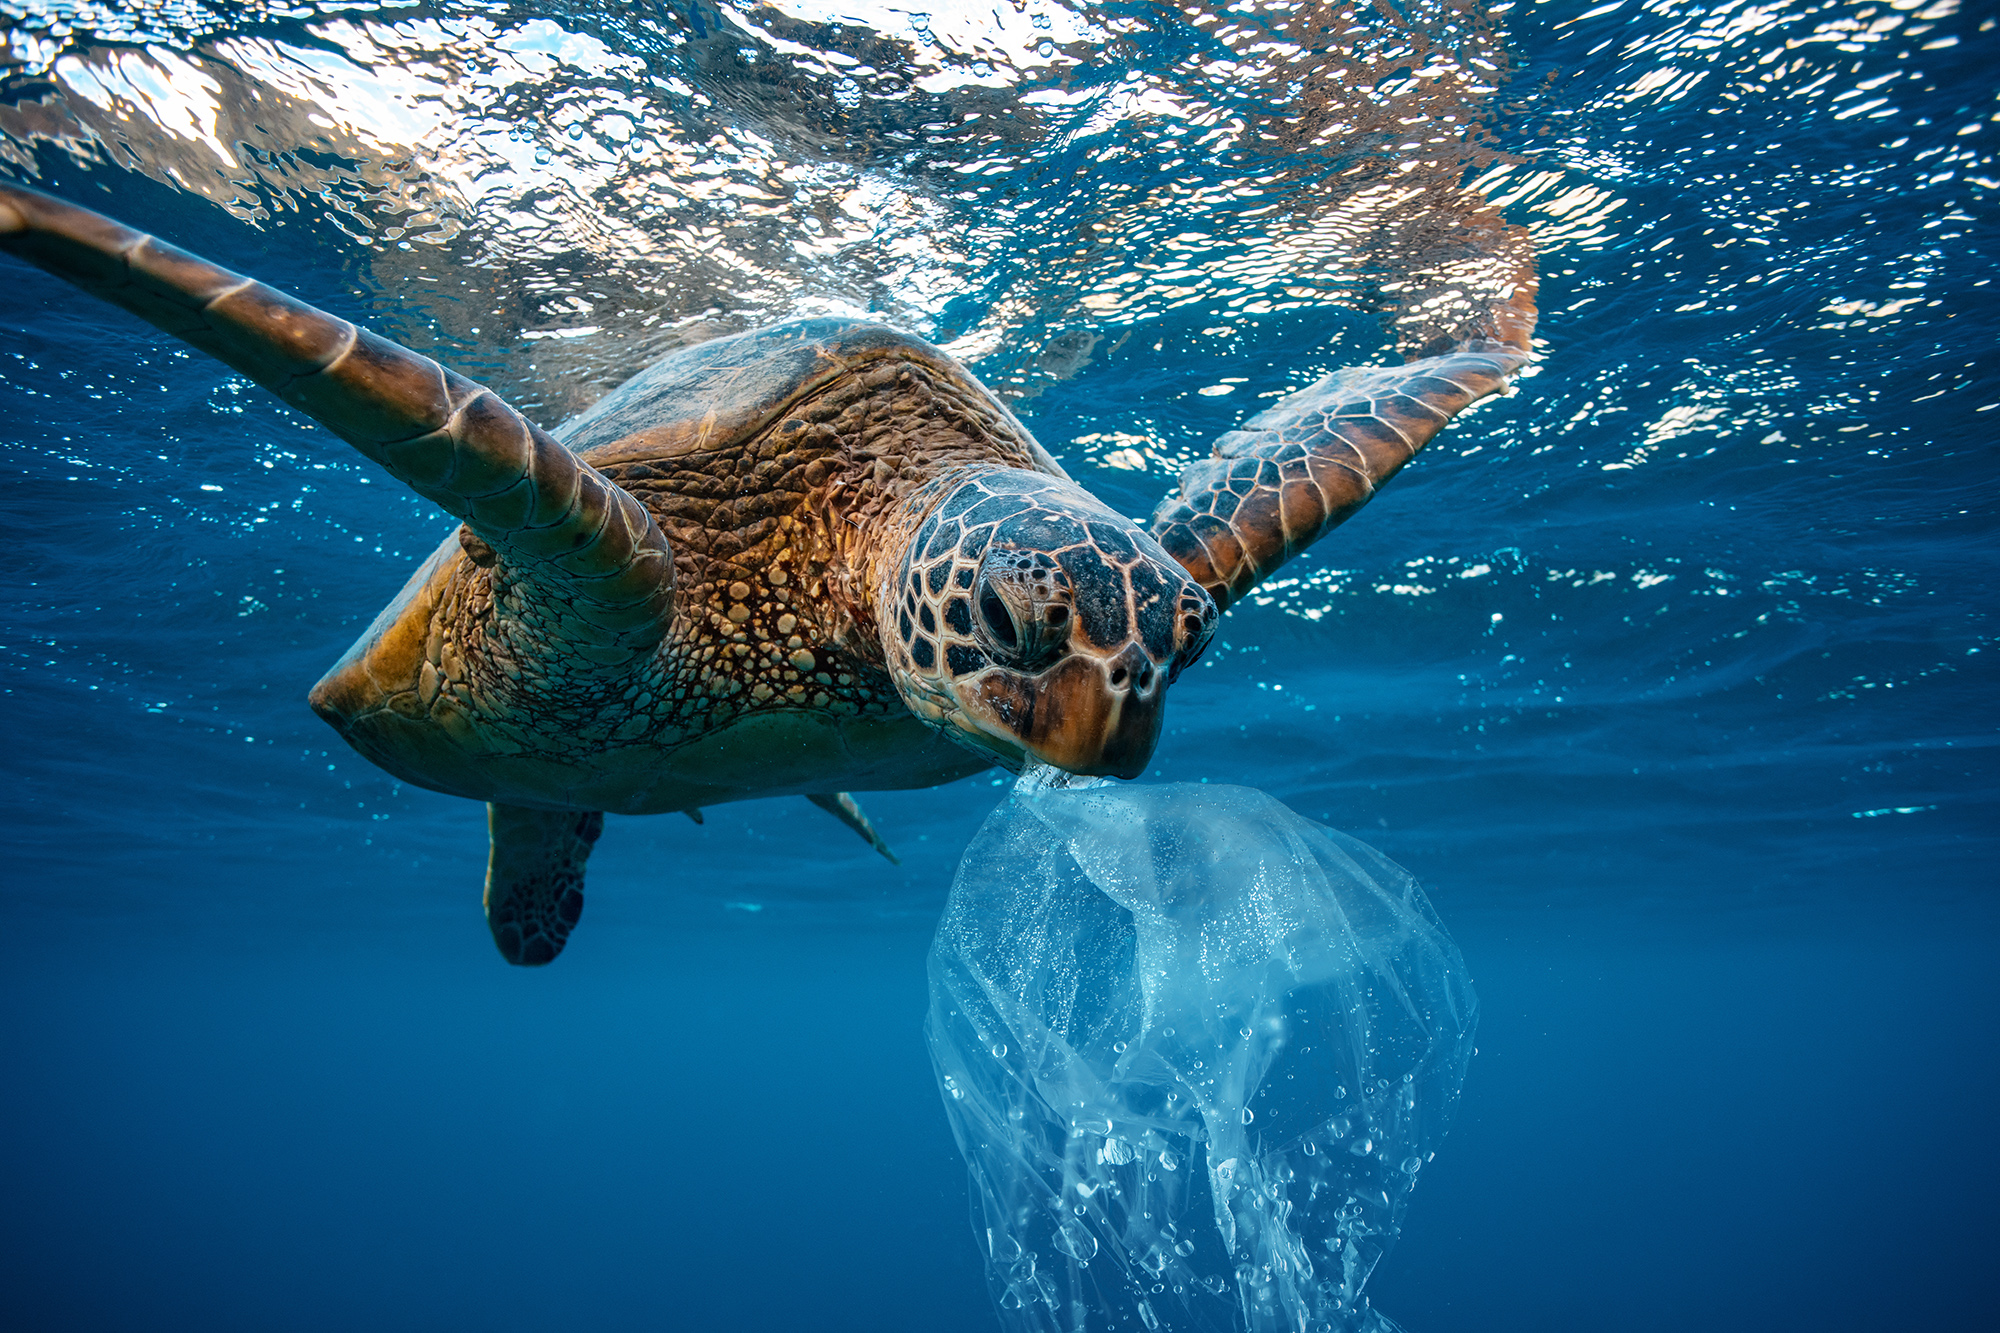 Sea Turtle with plastic bag in its mouth